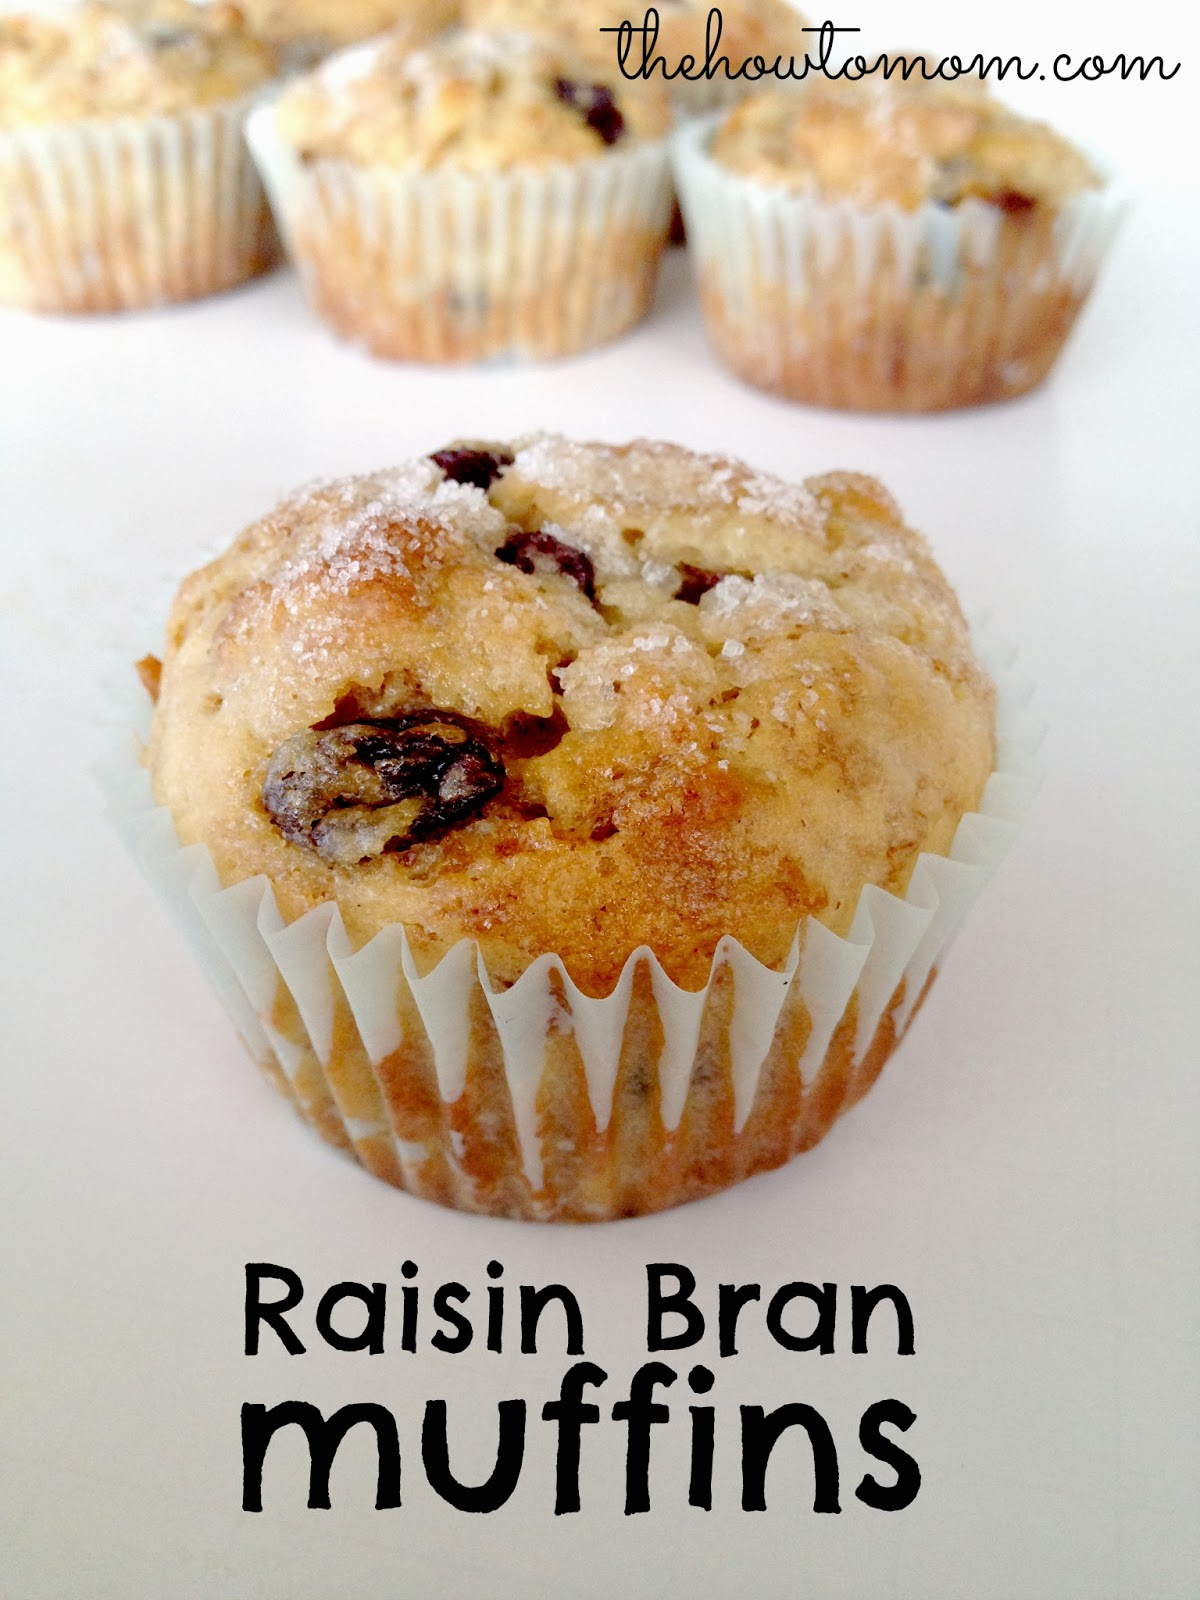 and blueberry muffins rye raisin muffins banana oatmeal raisin muffins ...